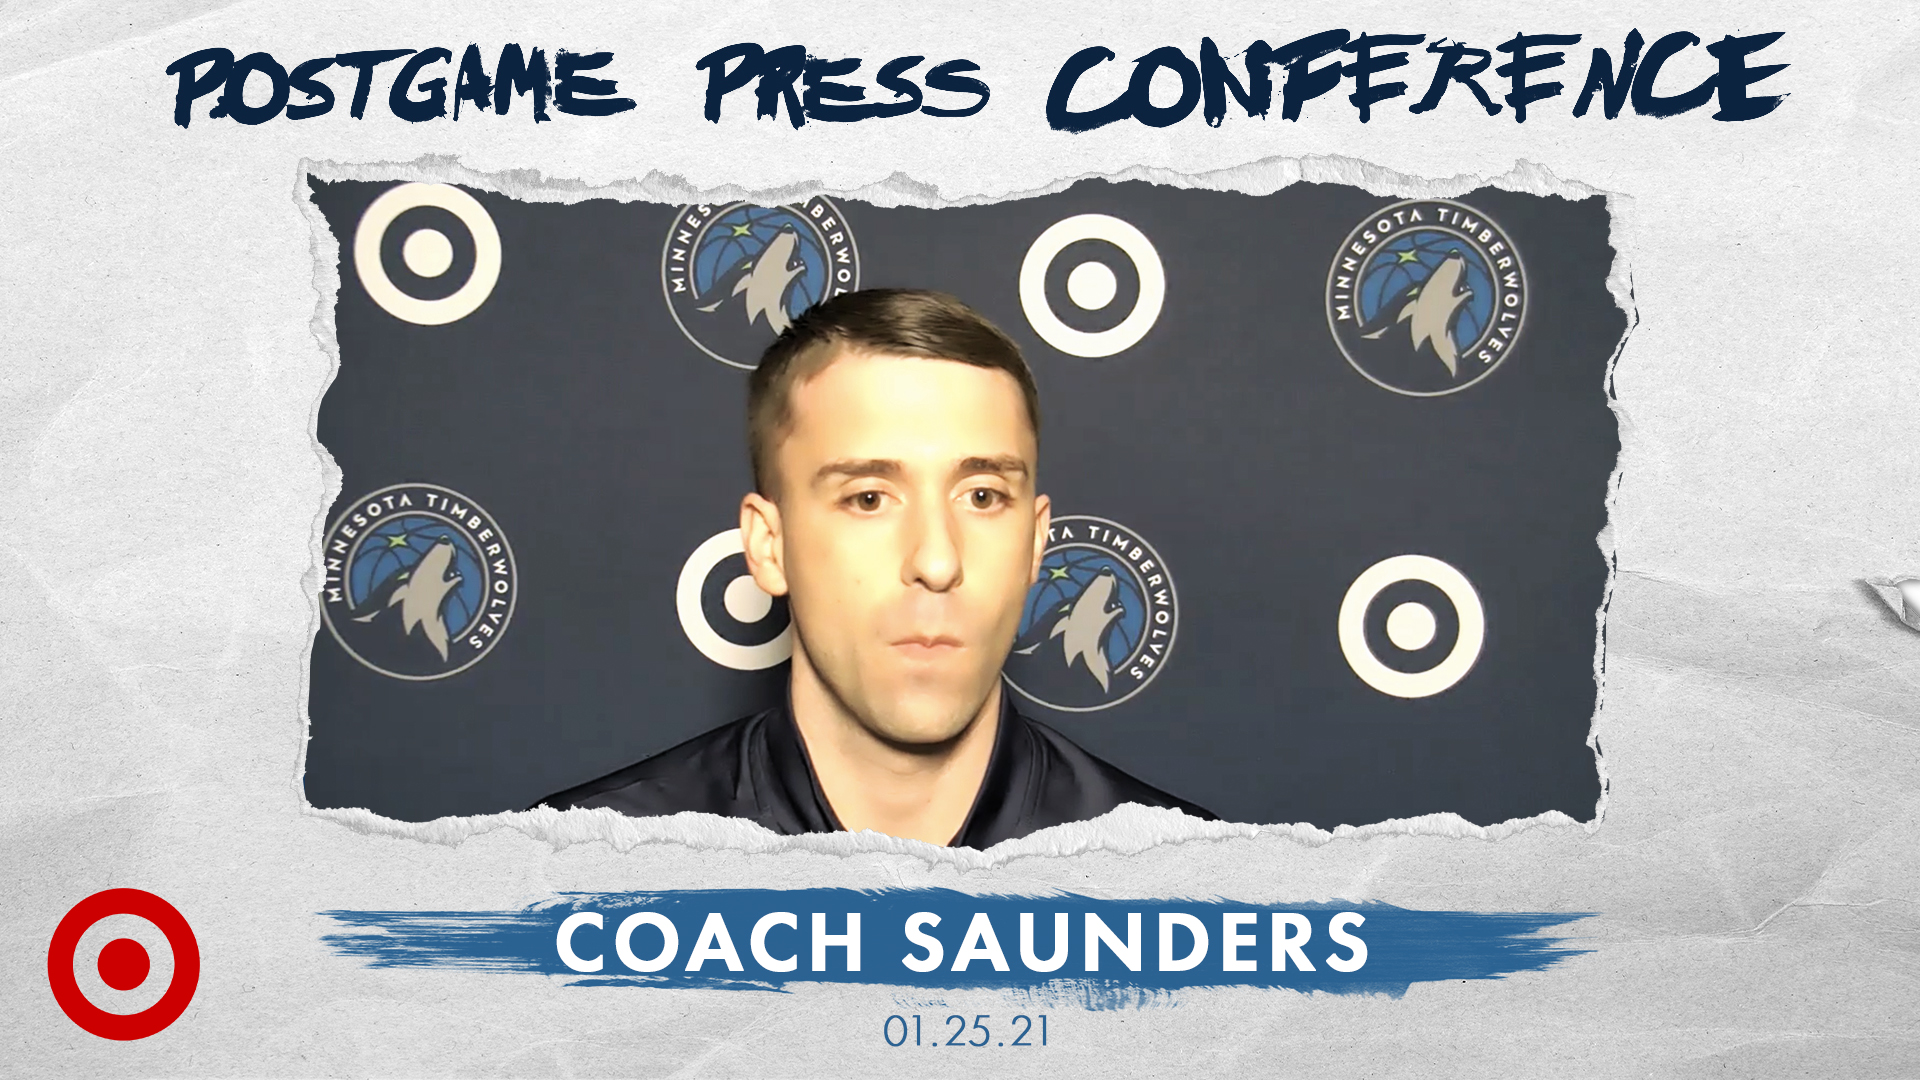 Coach Saunders Postgame Press Conference - January 25, 2021